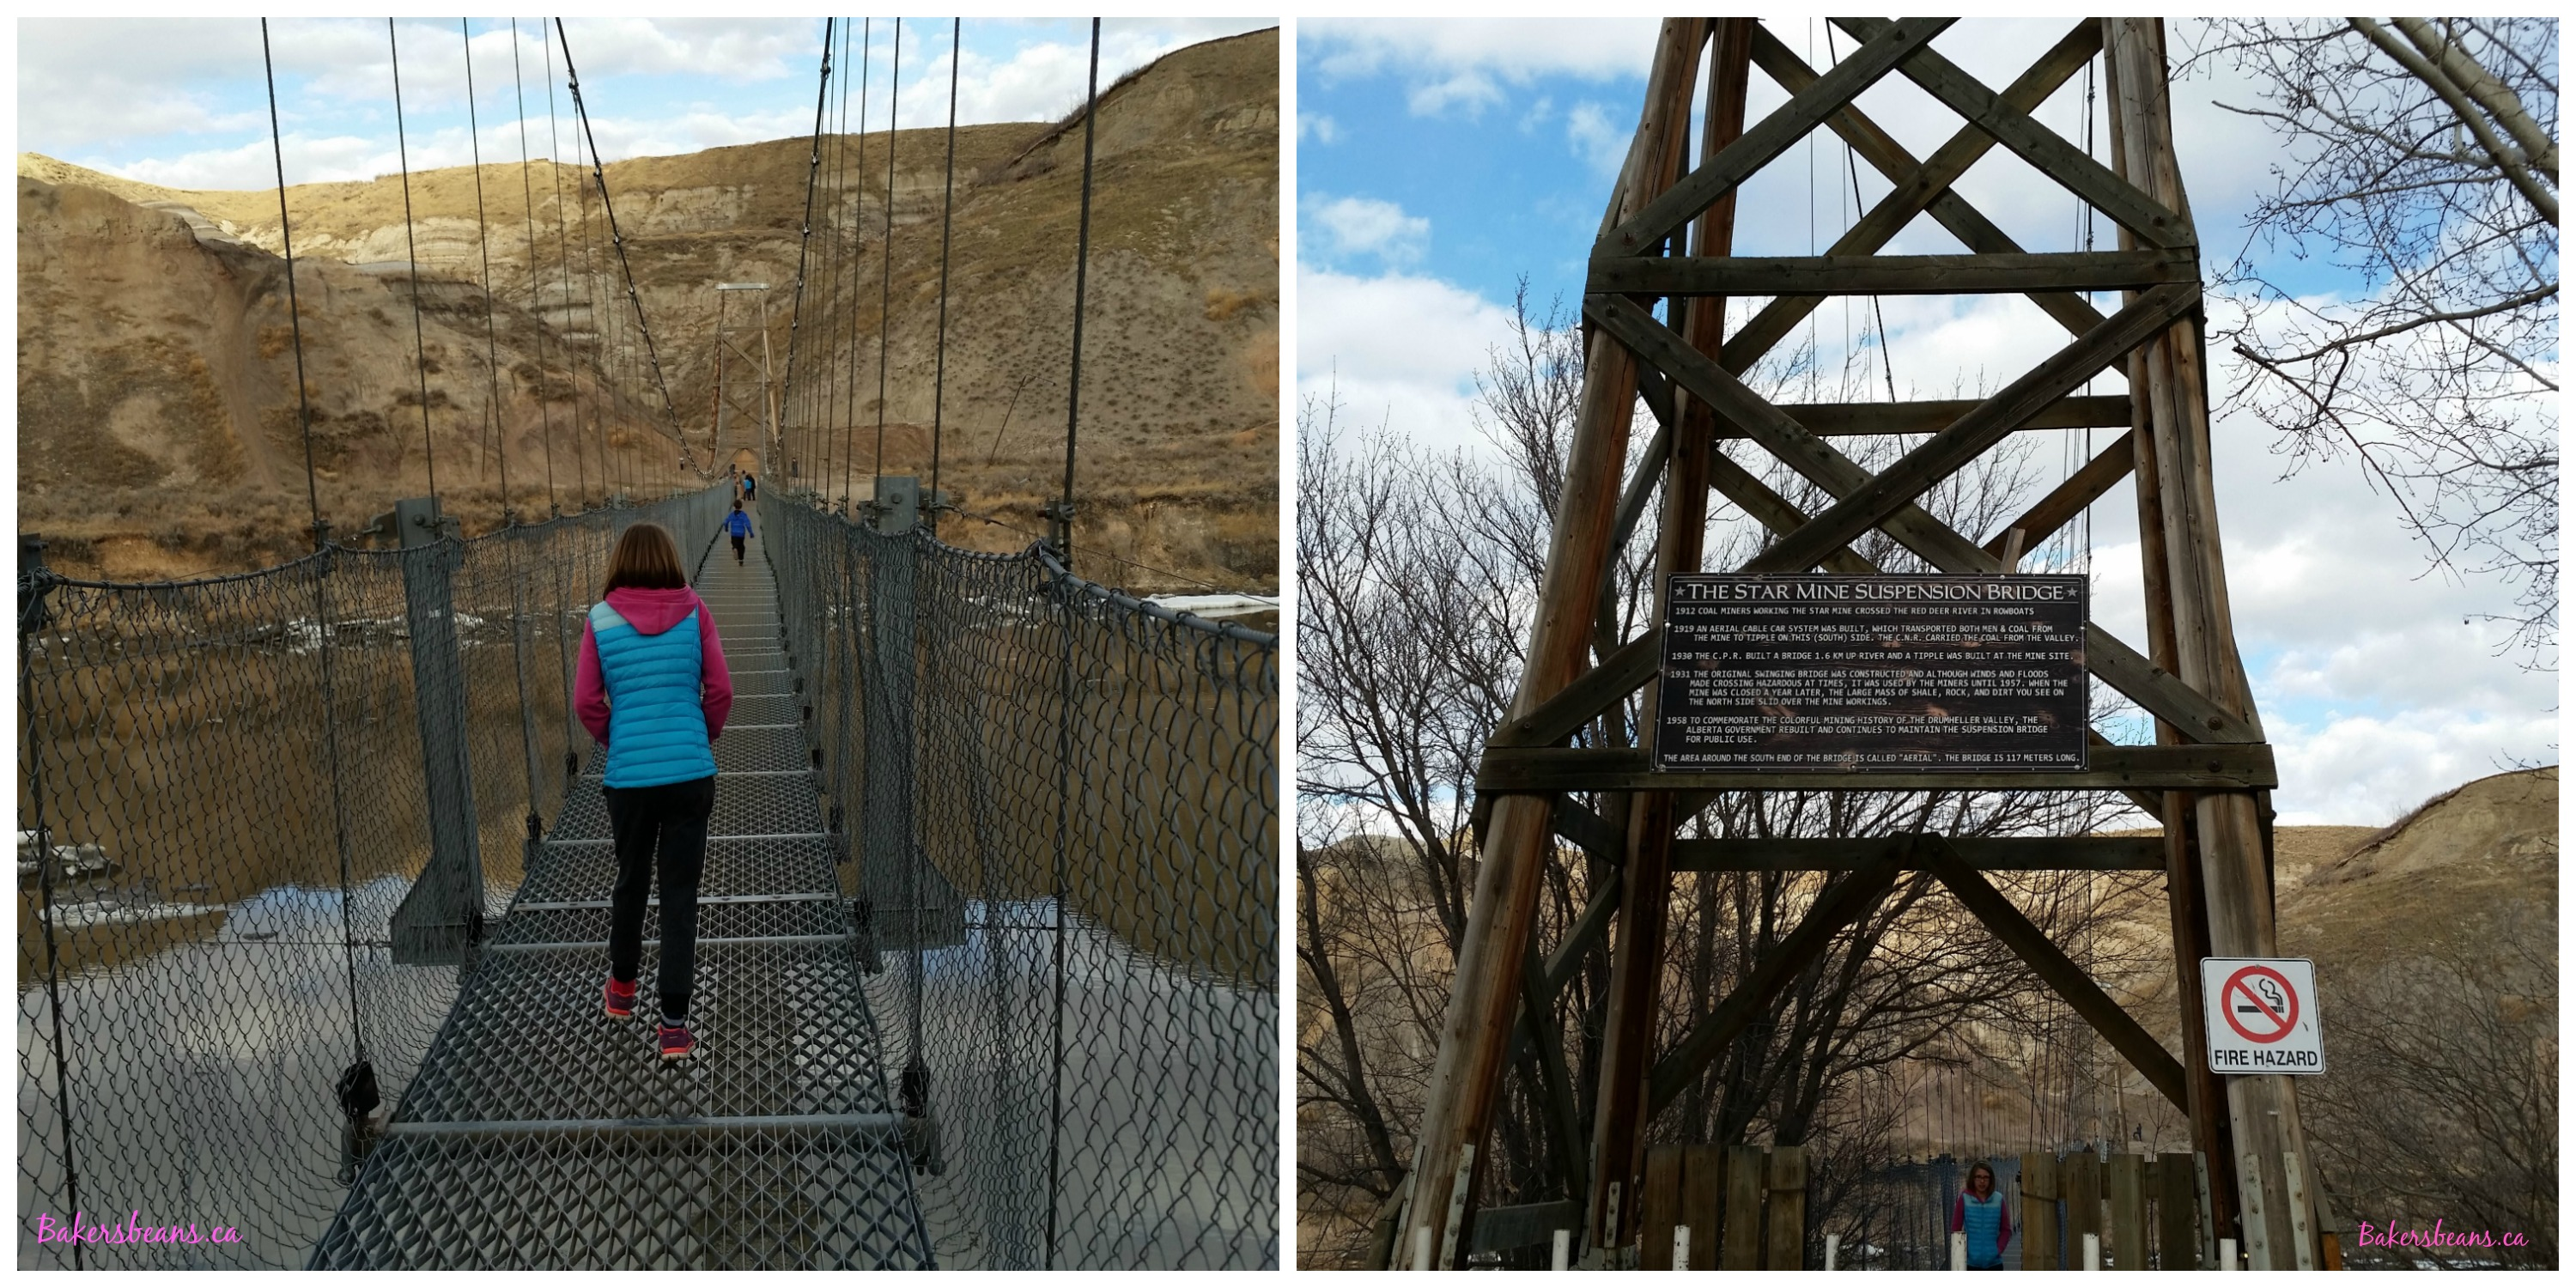 Star Mine Suspension Bridge